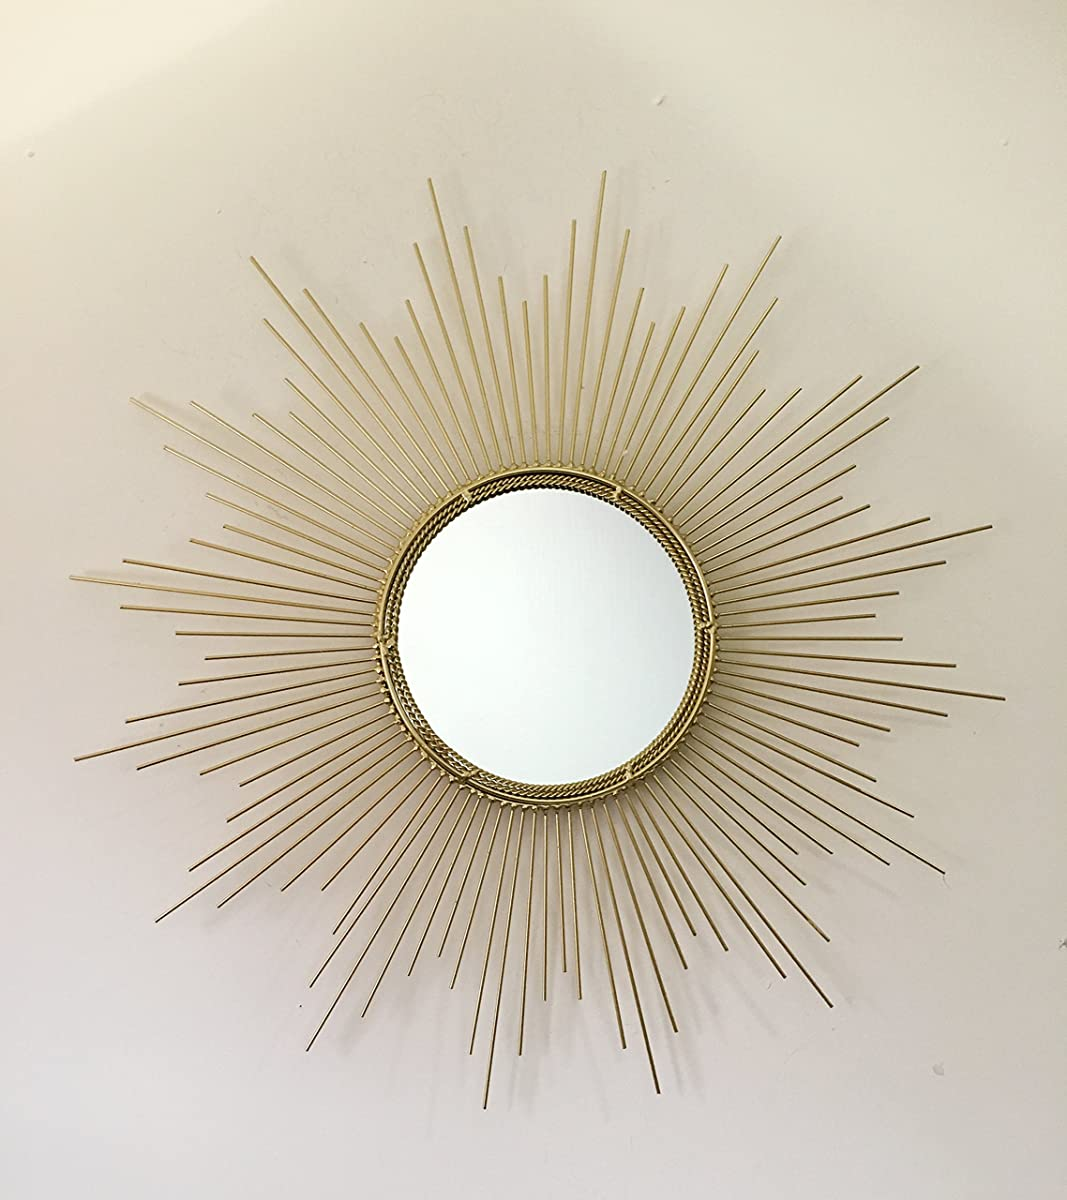 Decorative Starburst Mirror,Bathroom Mirrors Contemporary Metal Wall Hanging Mirror in Sunburst Shape (Drop Mirrors) MD102